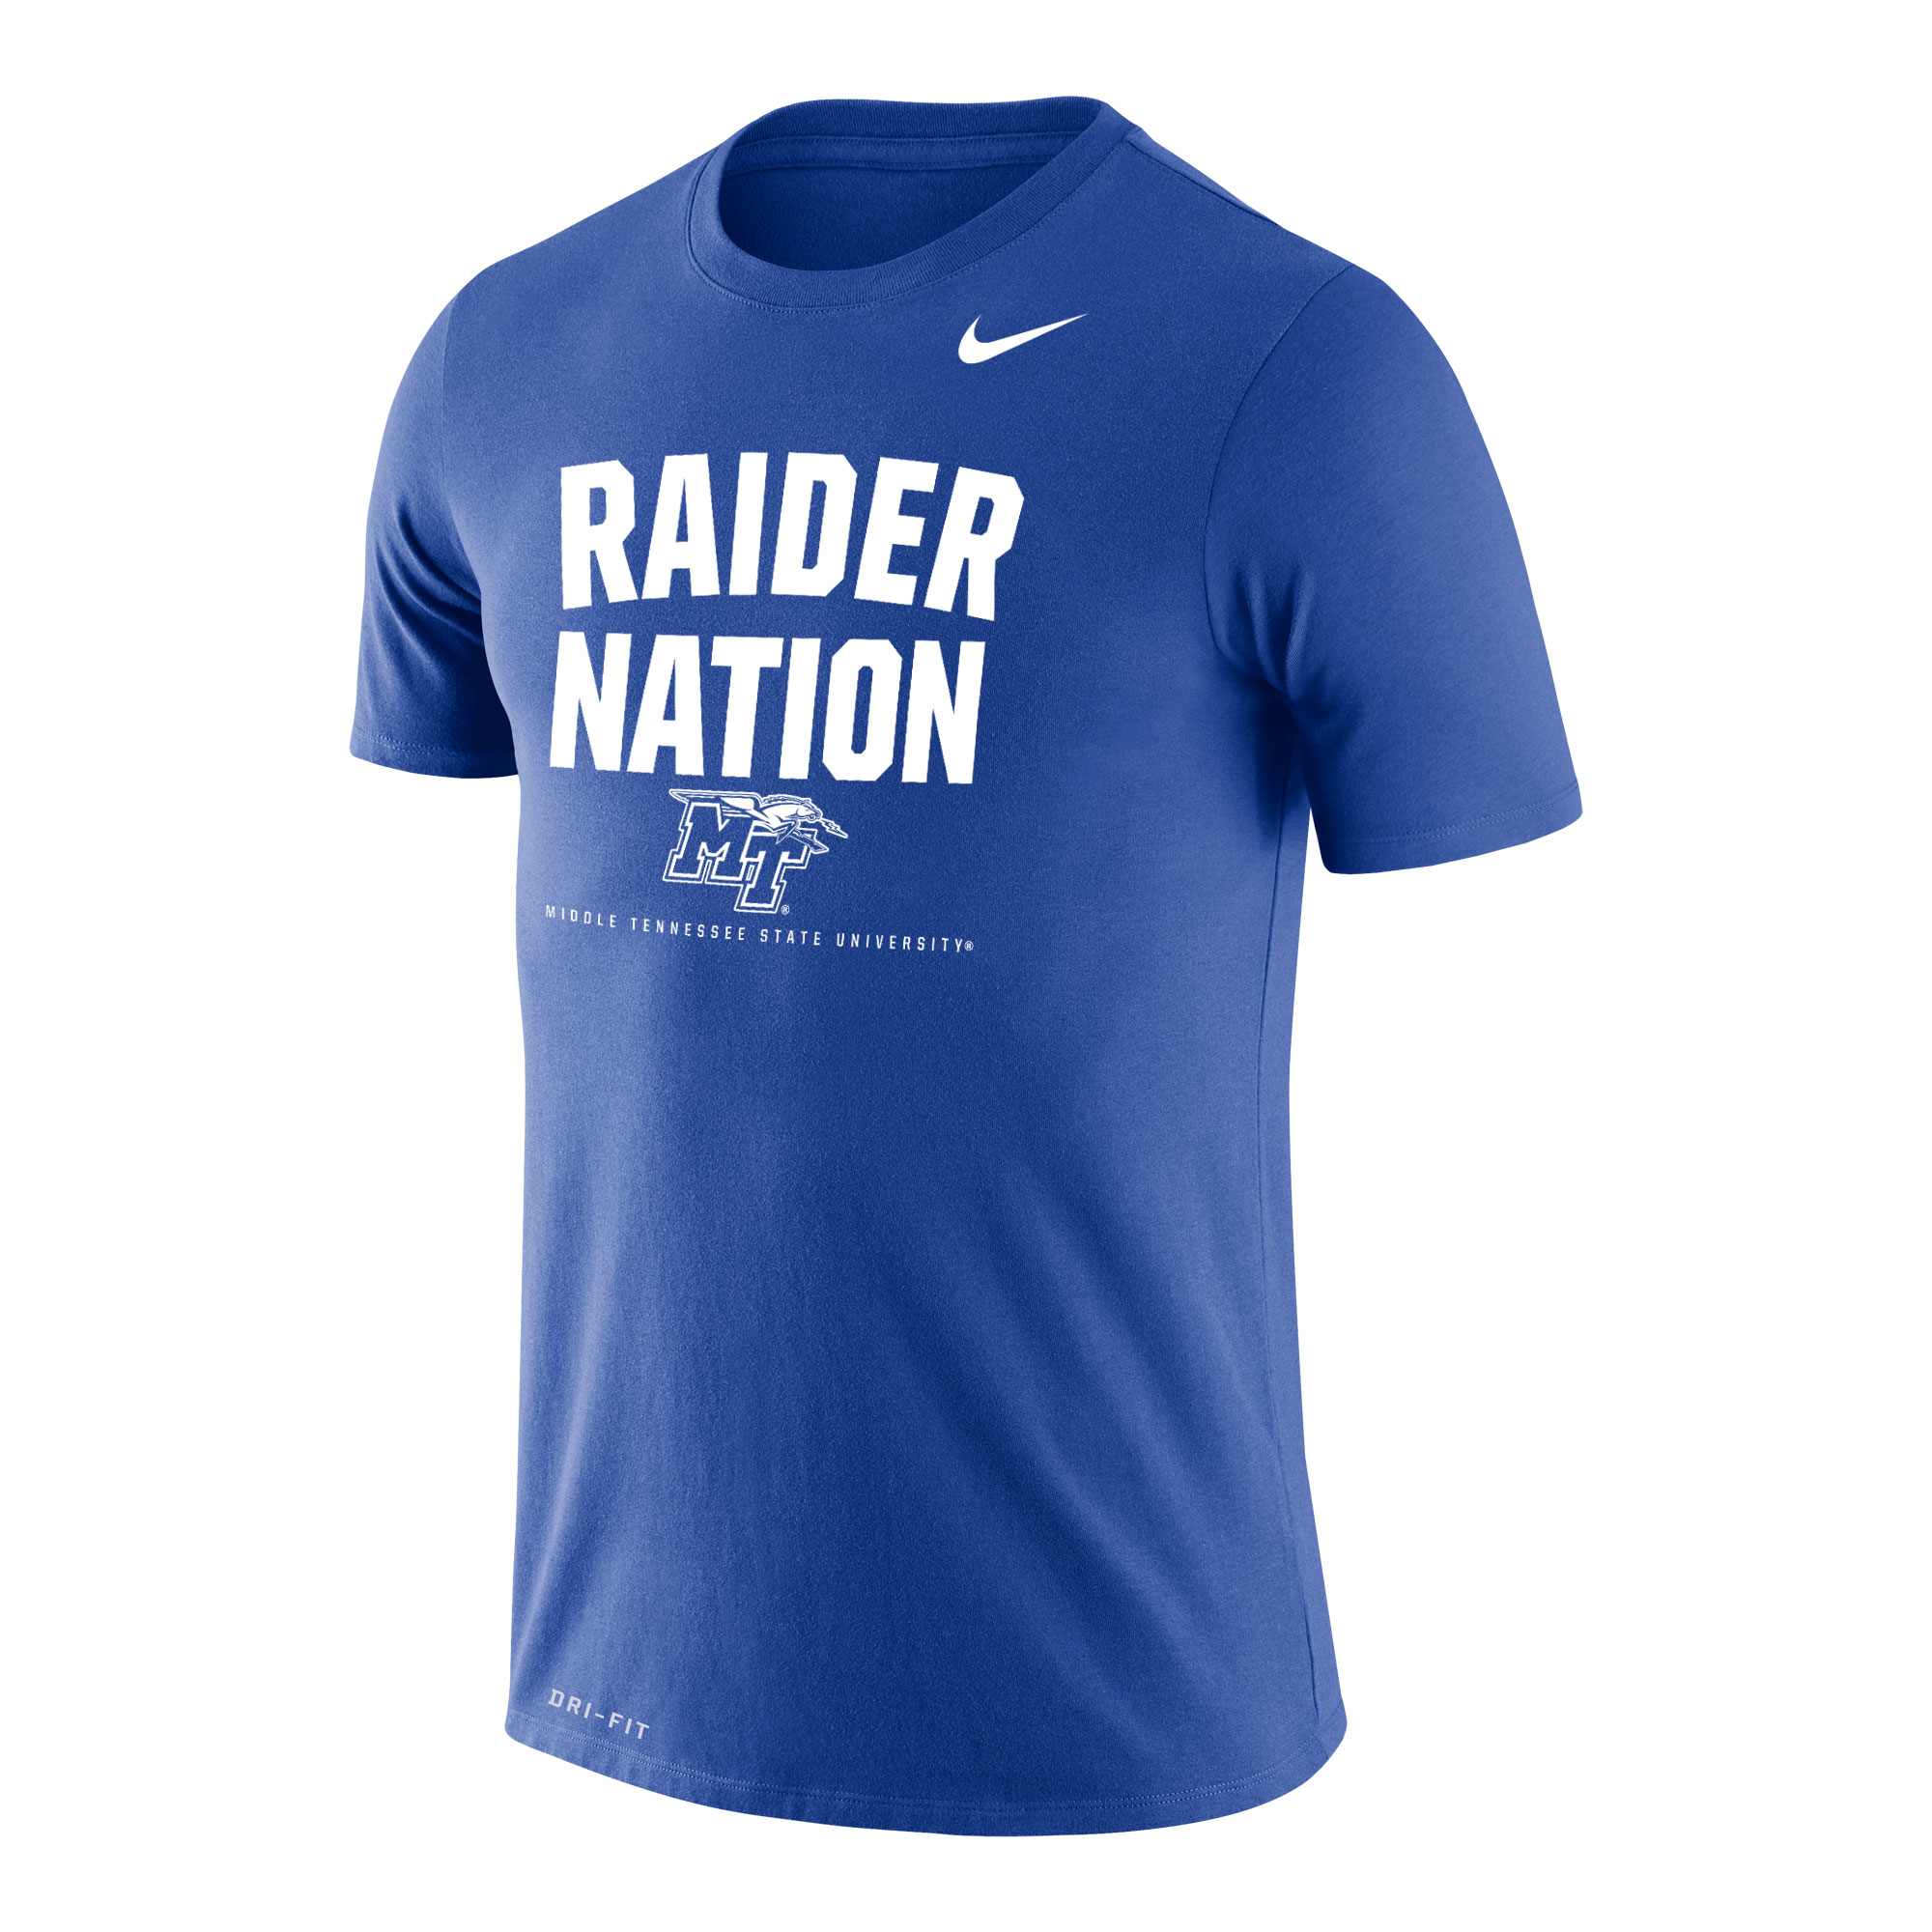 Raider Nation MTSU Nike® Dri-Fit Cotton Shirt